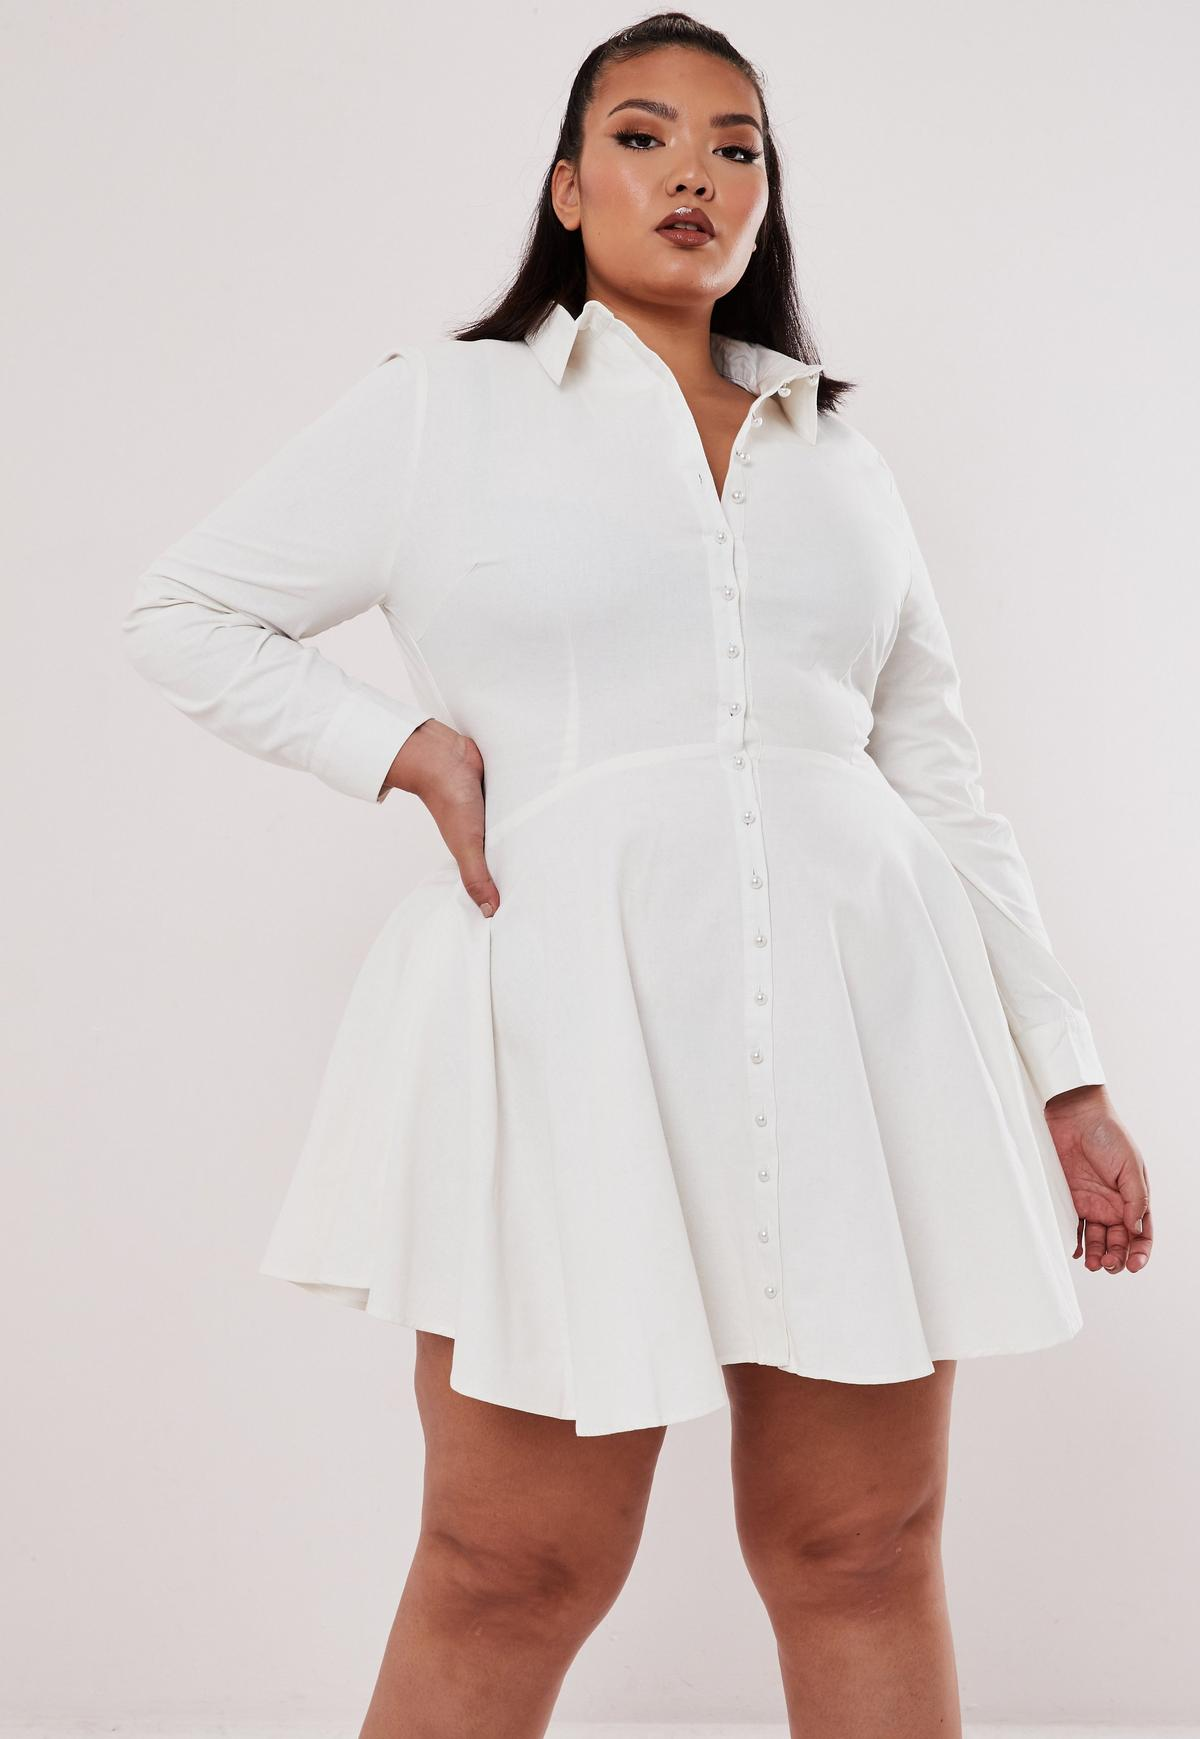 Plus Size White Pearl Button Shirt Dress